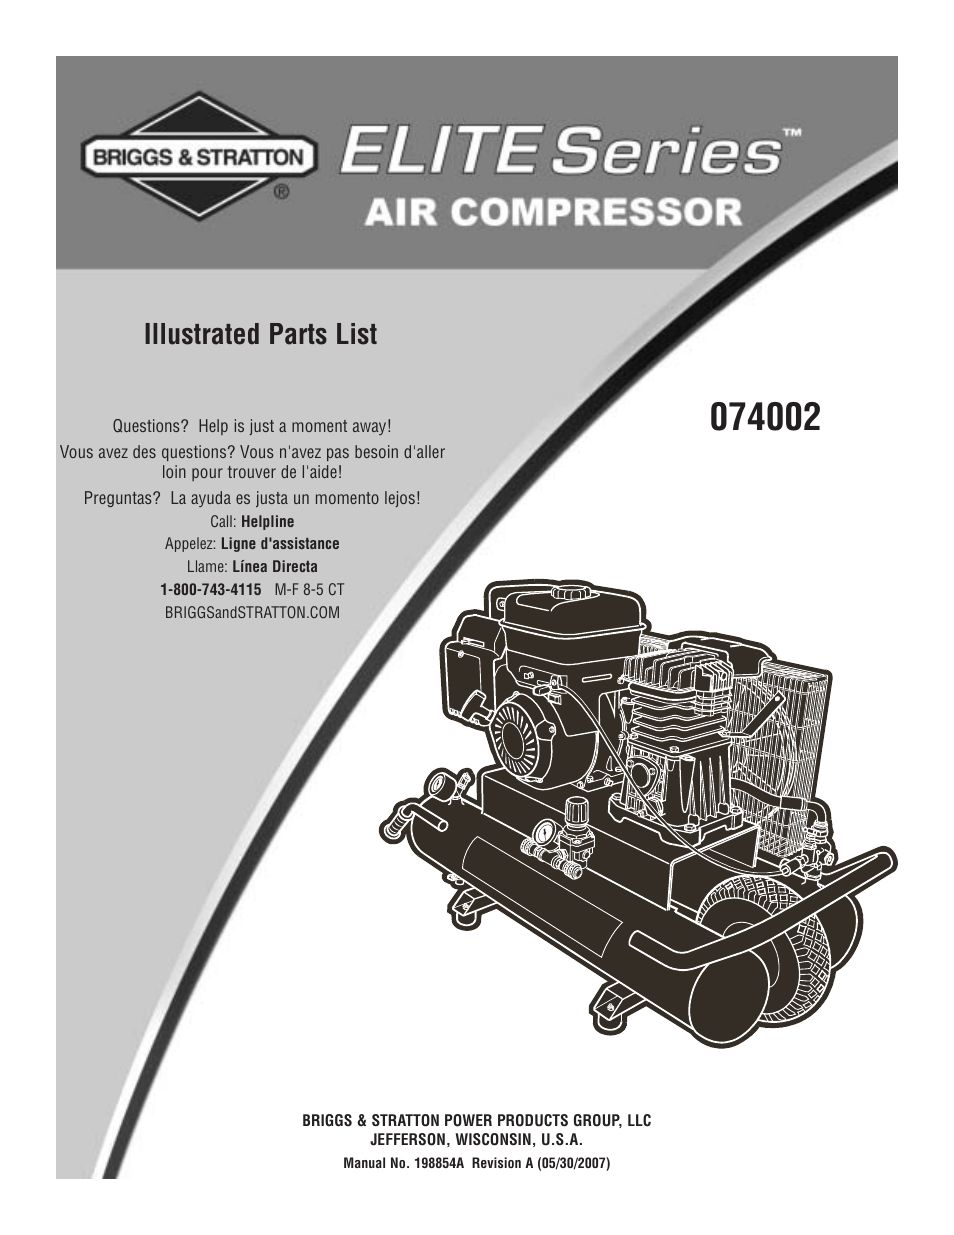 Briggs Stratton 074002 User Manual 3 Pages And Engine Diagram Parts List For